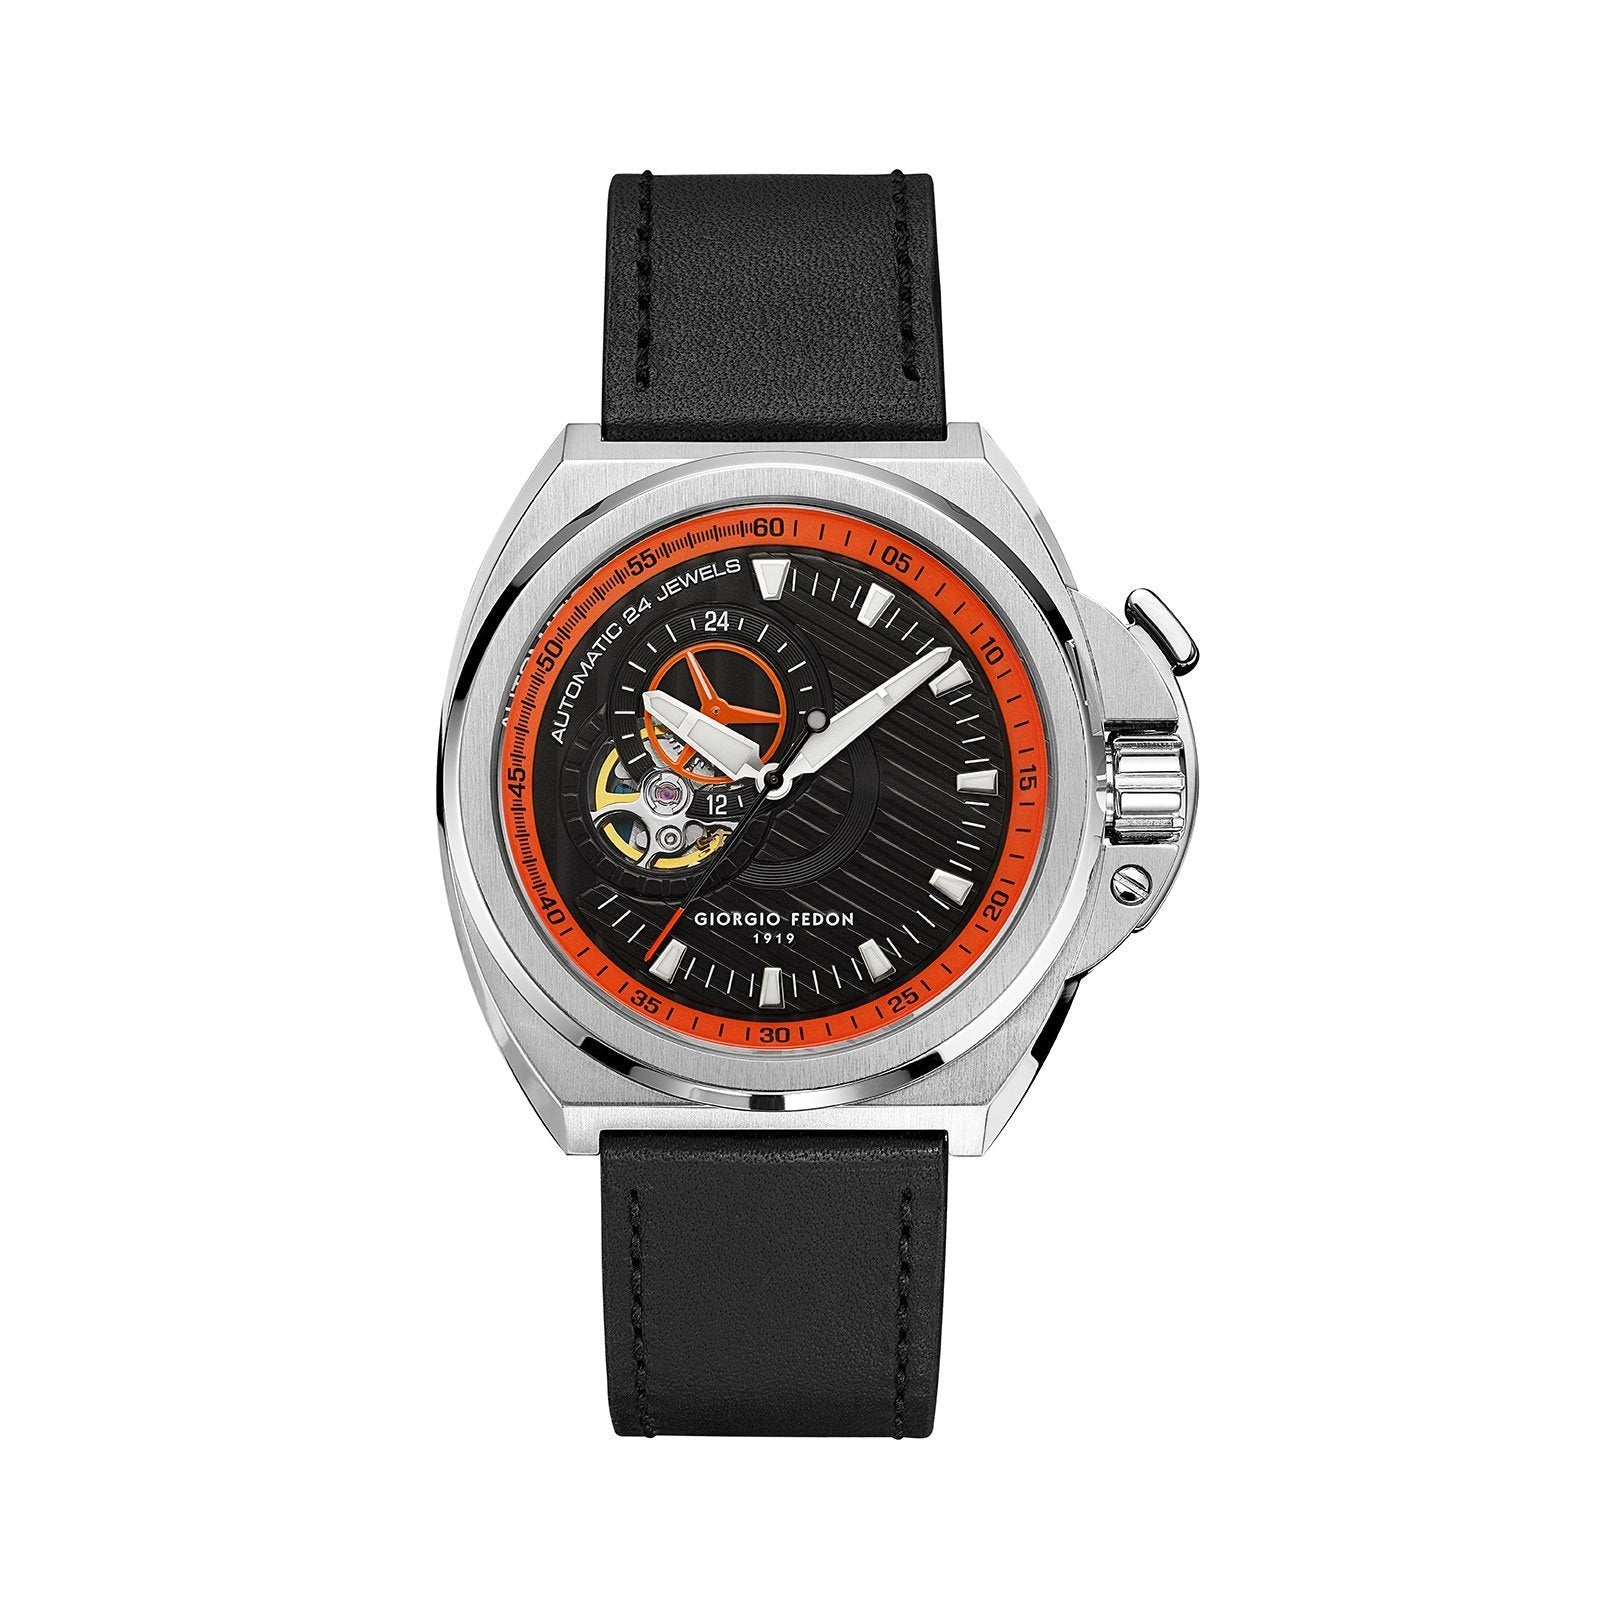 Giorgio Fedon Skywalker Black - Watches & Crystals